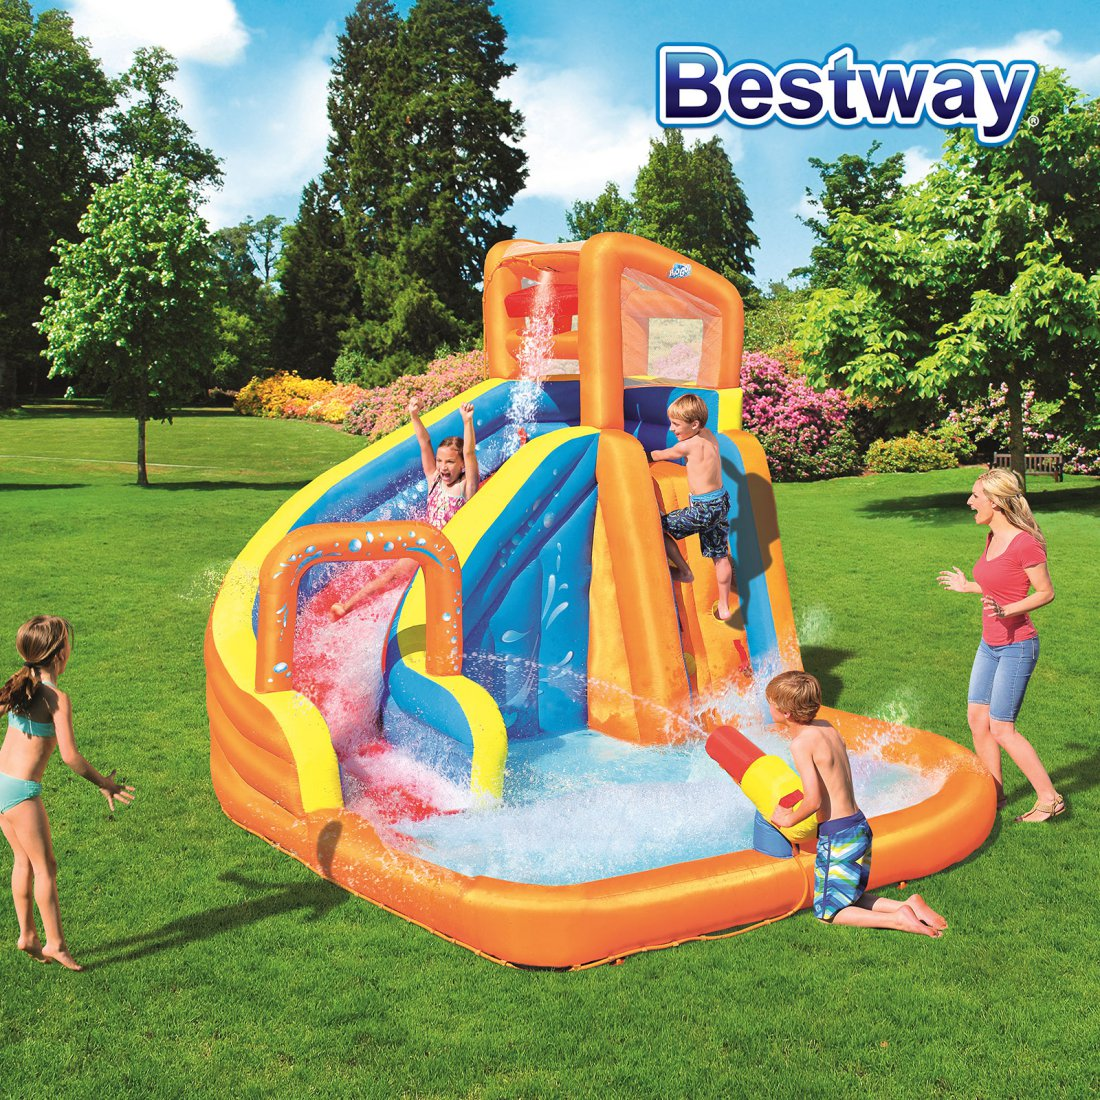 Bestway Water Park Lagoon - Turbo Splash Water Zone - Mega Fun Kids Pool Slide